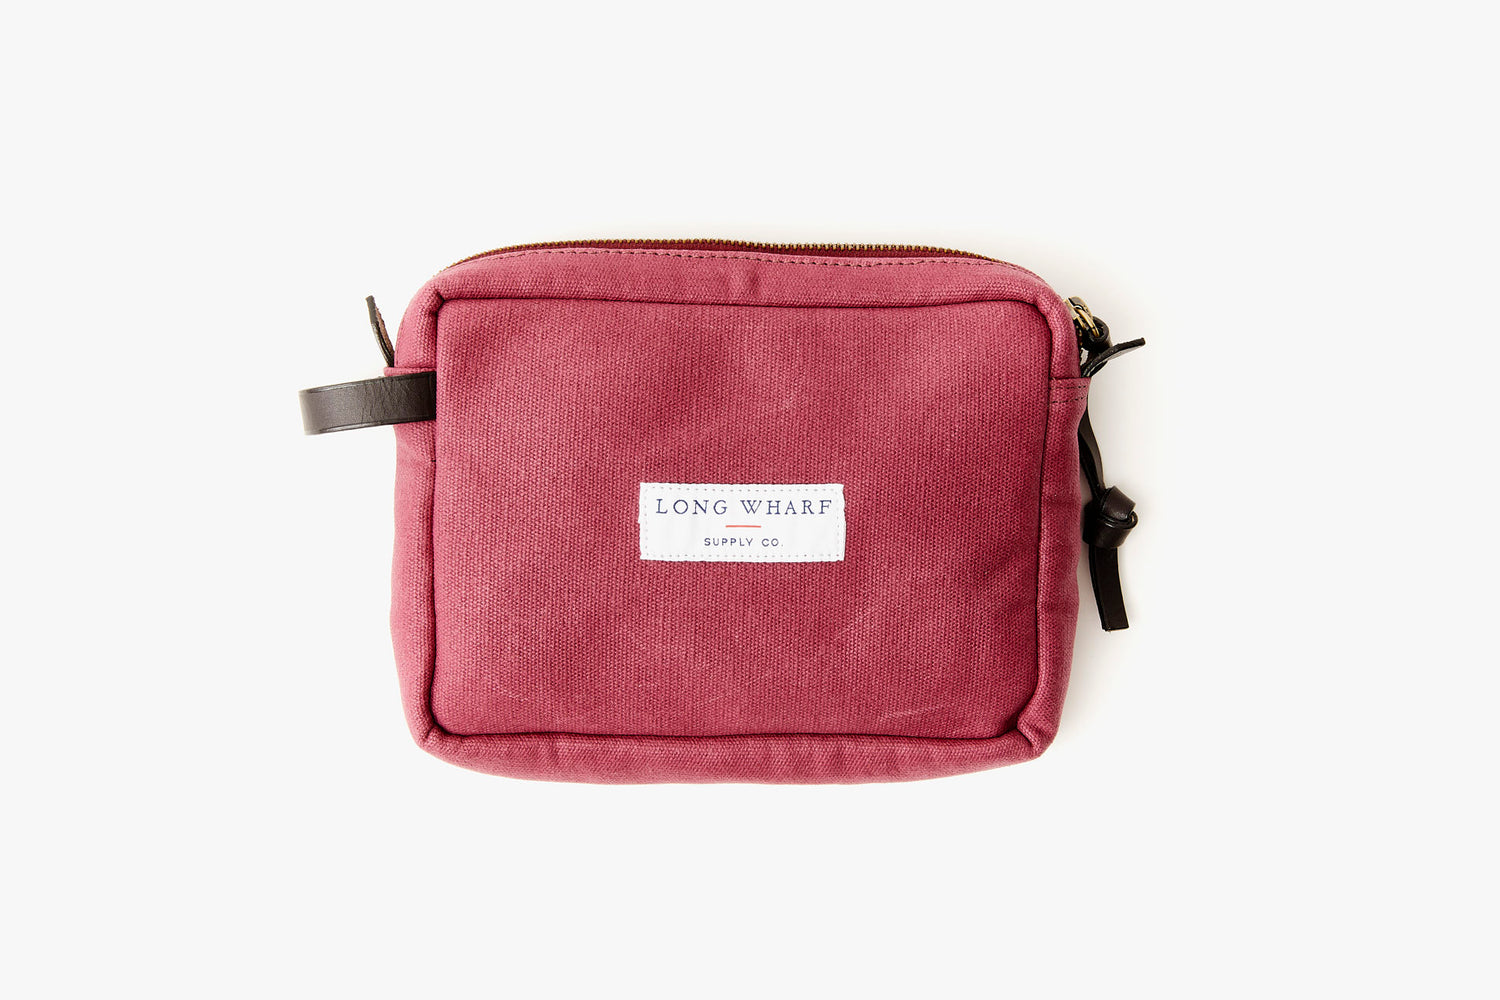 Long Wharf Supply Co. Nantucket Travel Kit Bag